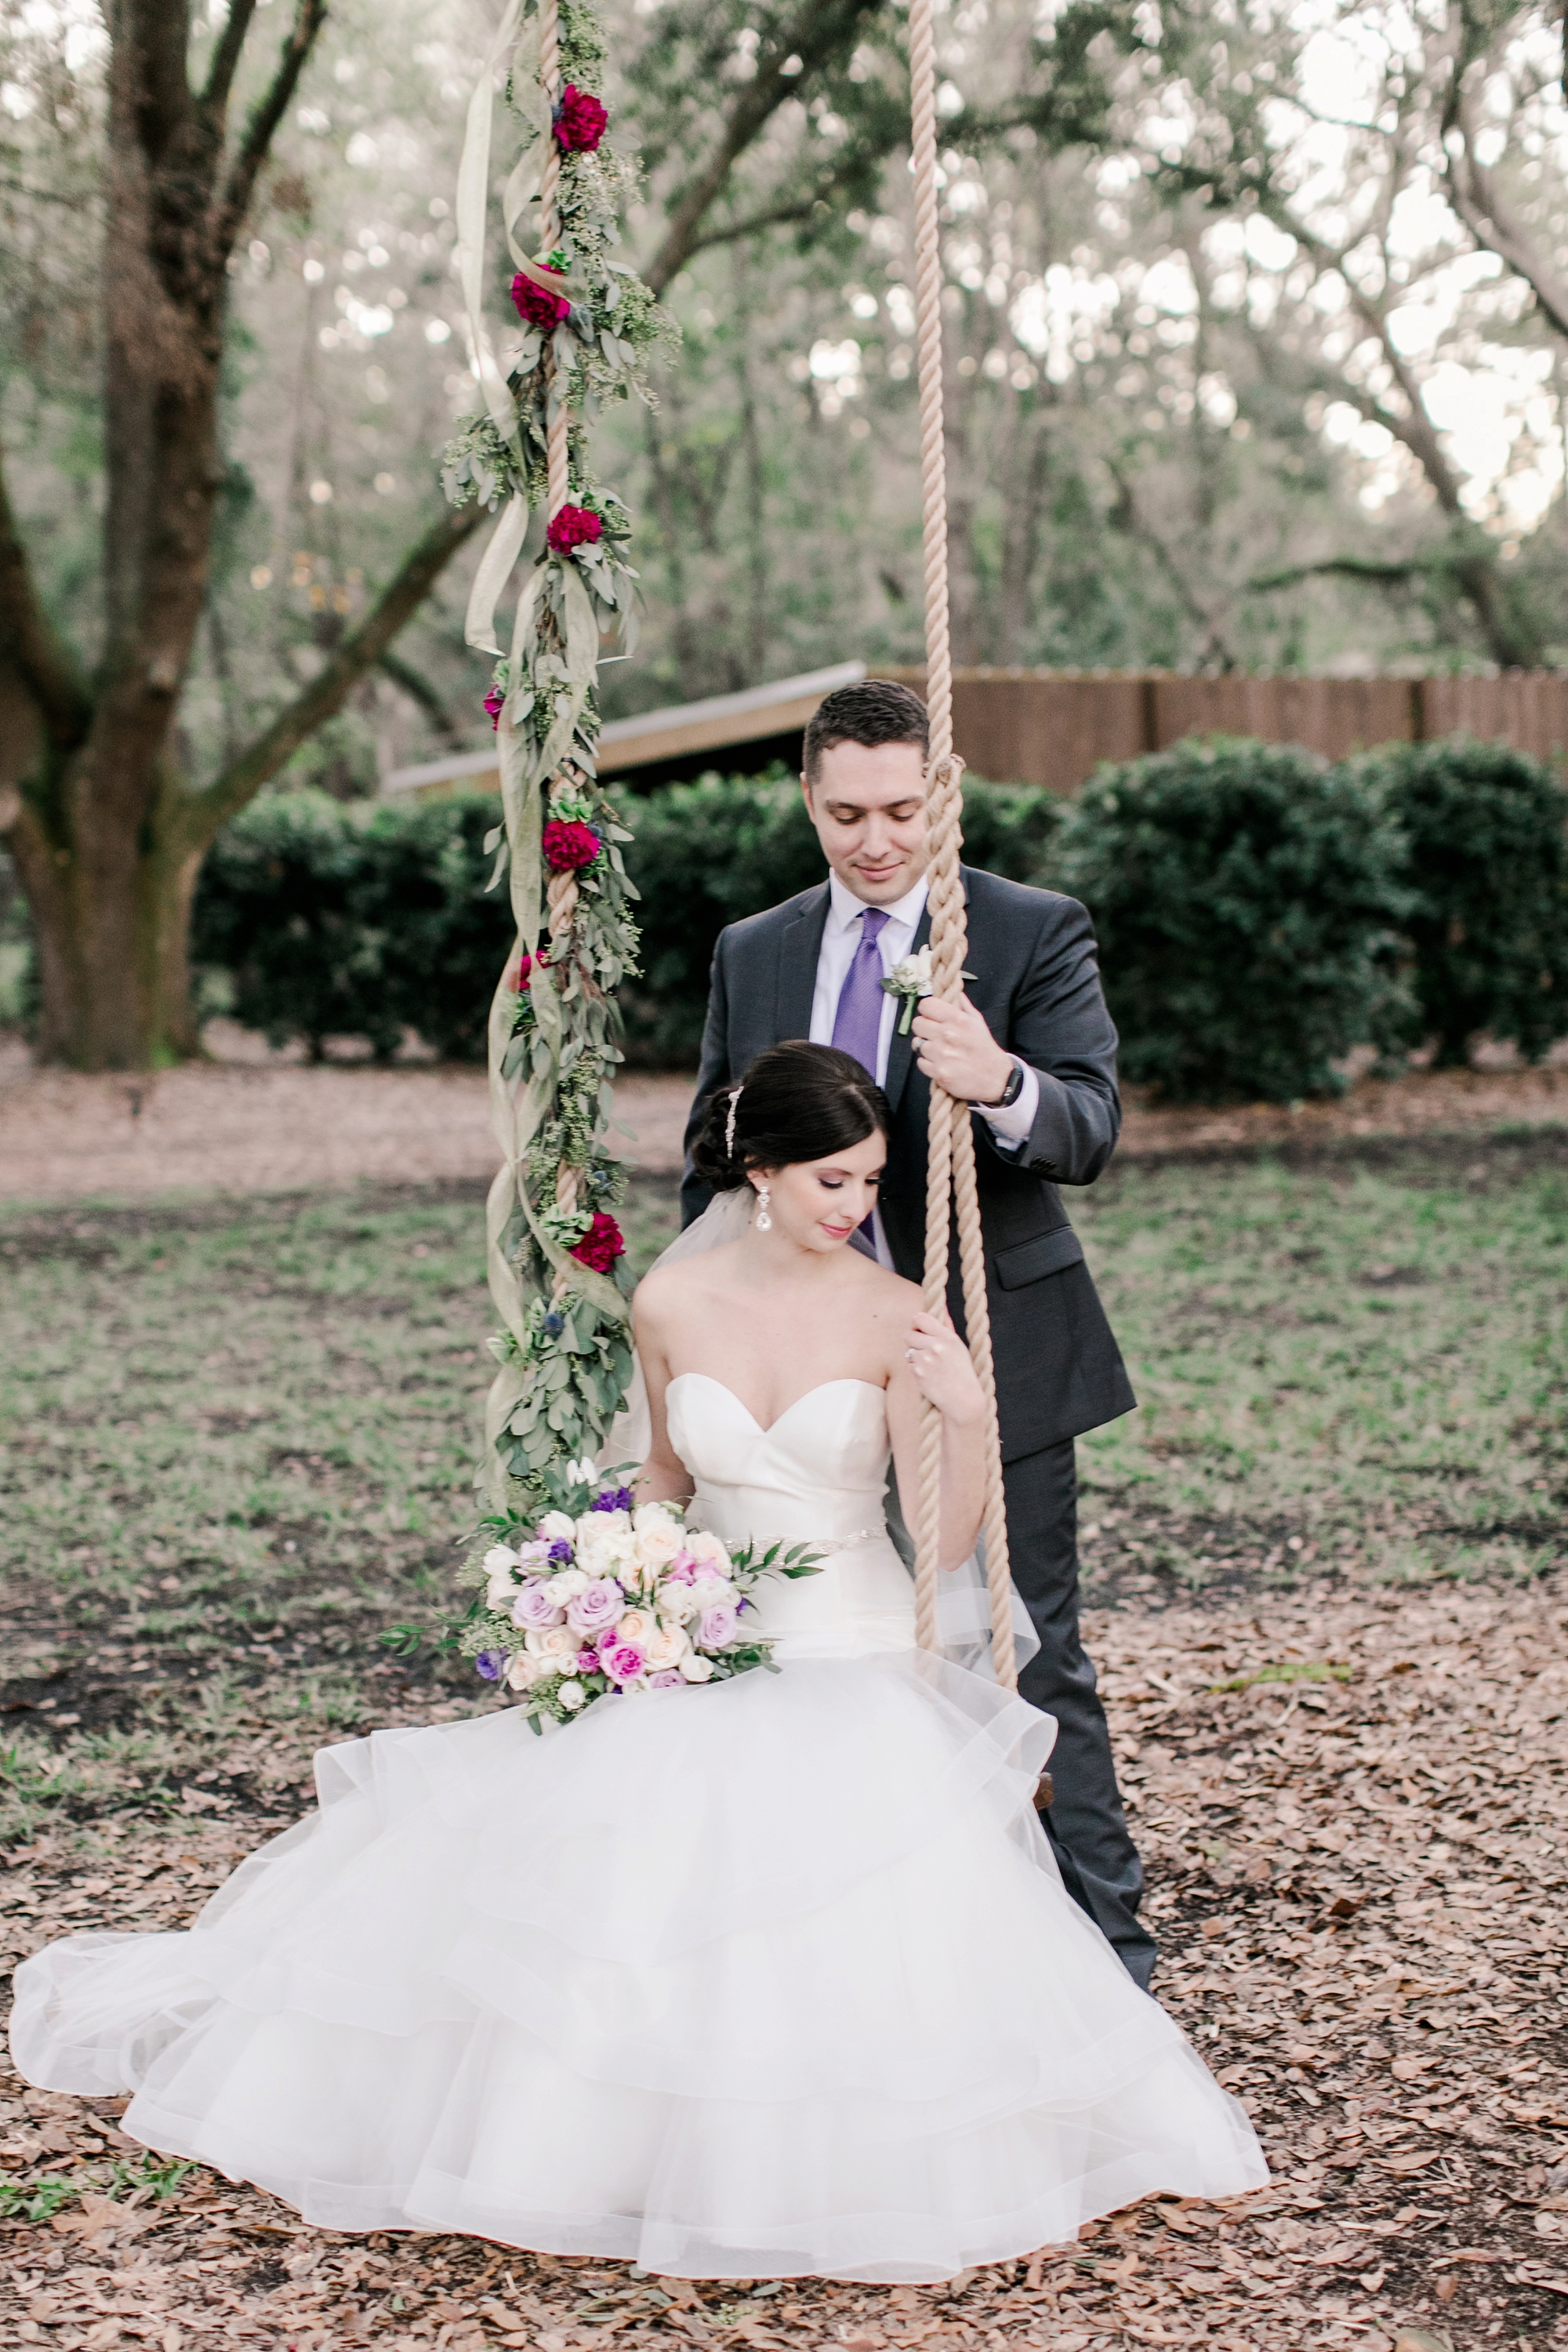 Natalie Broach Photography| Bowing Oaks Plantation Wedding Photographer | North Florida Wedding | Fine Art Wedding Photographer | Jacksonville Florida Wedding Photographer